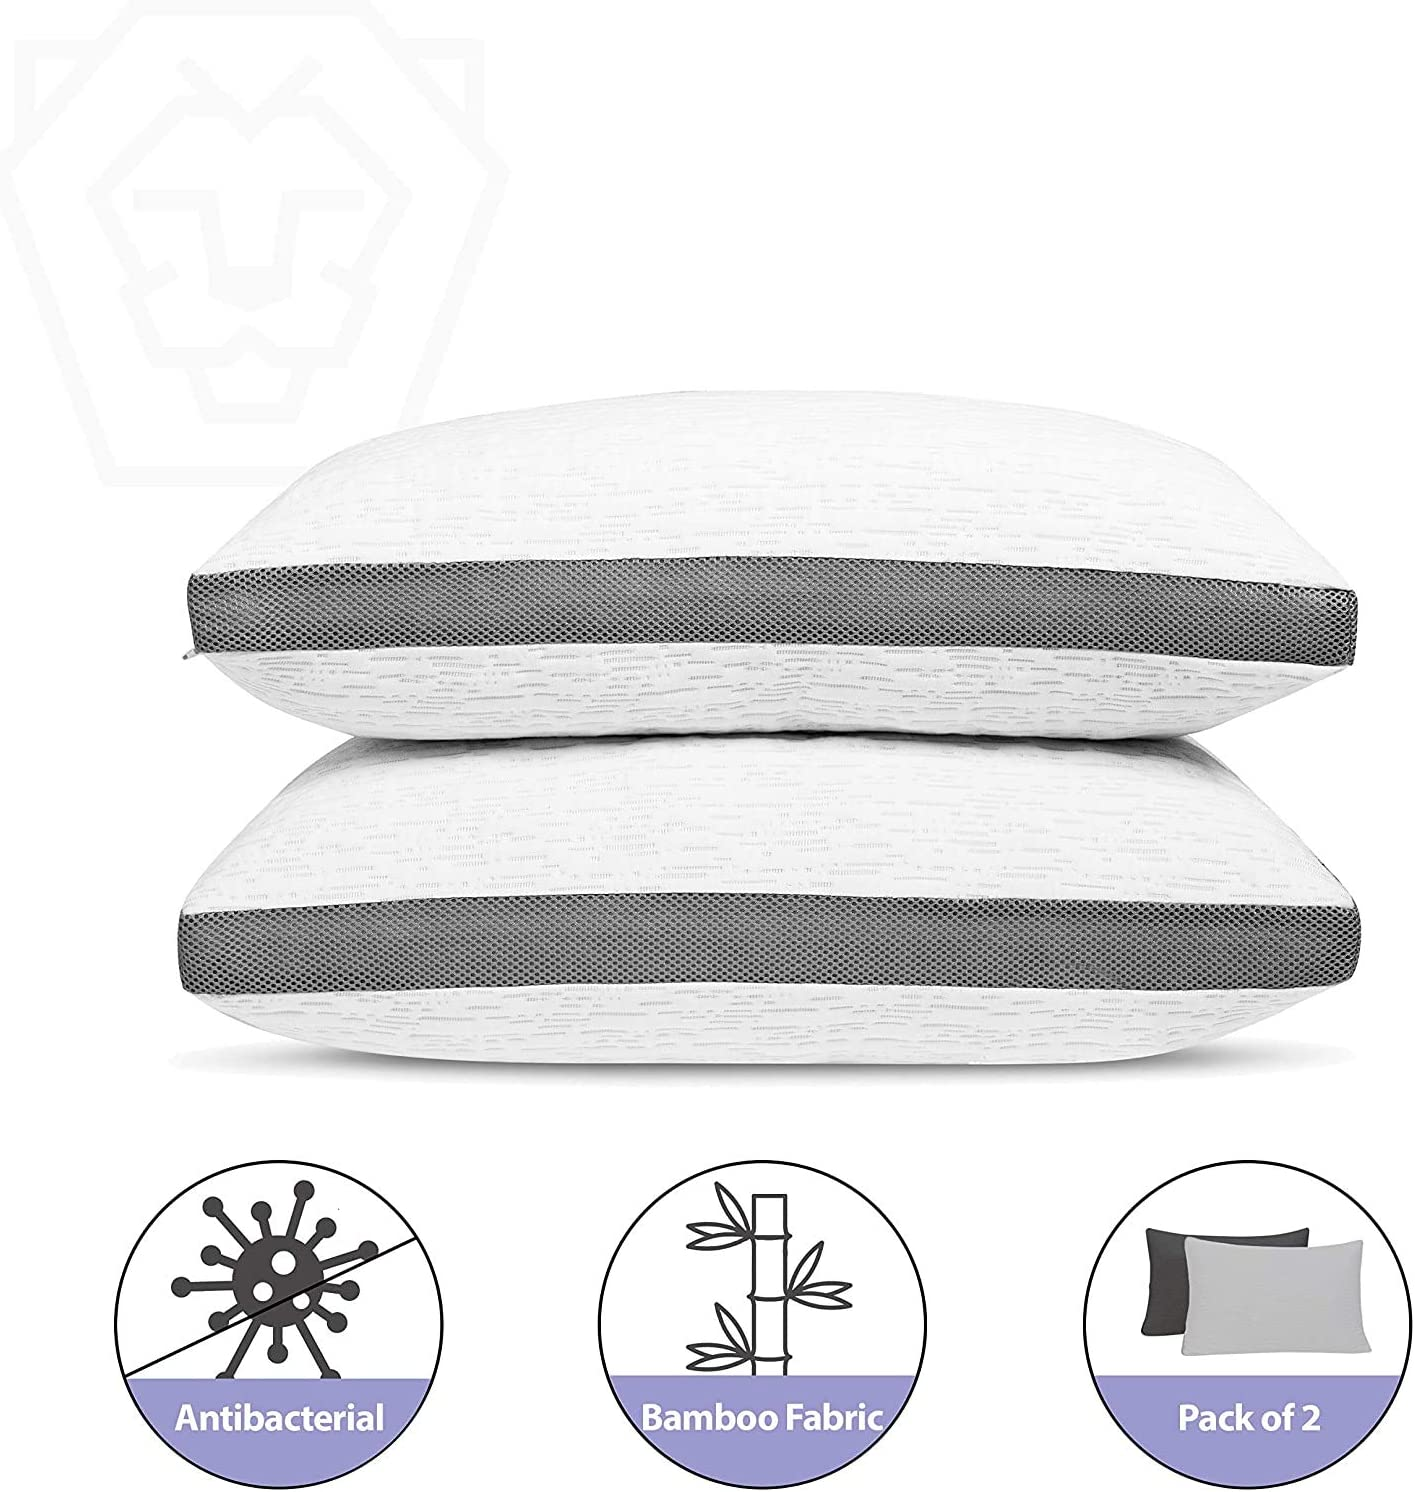 2 Pack Shredded Gel Memory Foam Pillow Antibacterial Silver Infused Bamboo Washable Cover Pillows for Sleeping Cooling Breathable Adjustable Pillow Neck Support Side Stomach Back Sleeper (Standard)